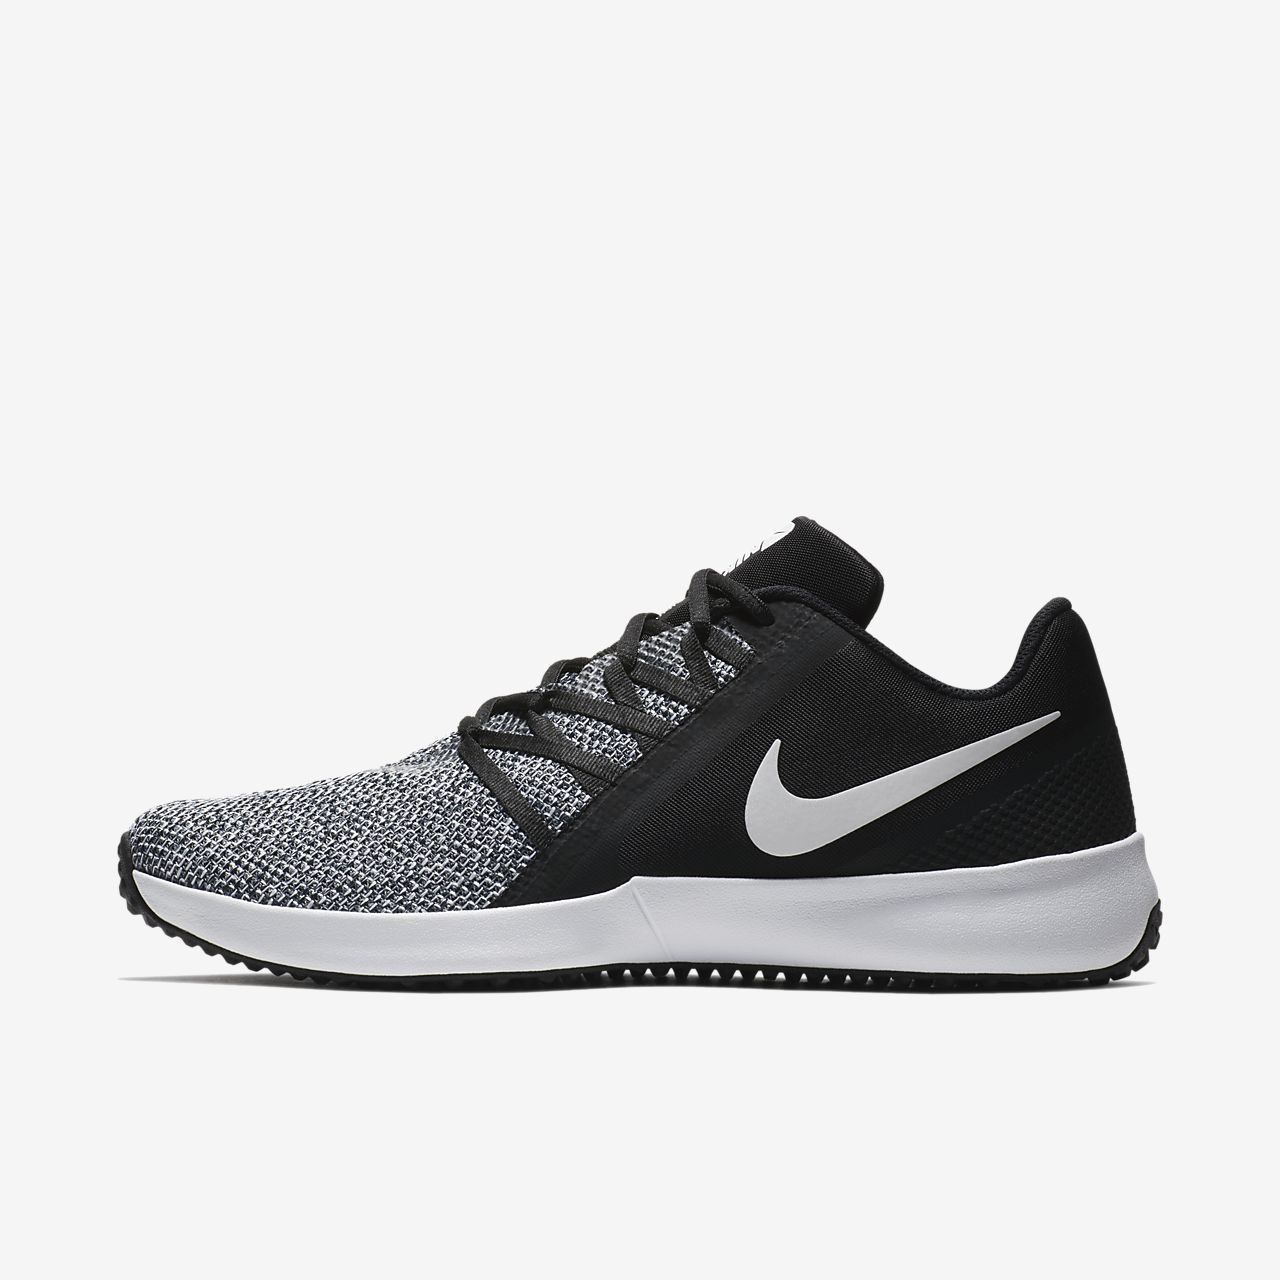 Nike Varsity Compete Trainer ... Men's Cross Training Shoes mfuqMf